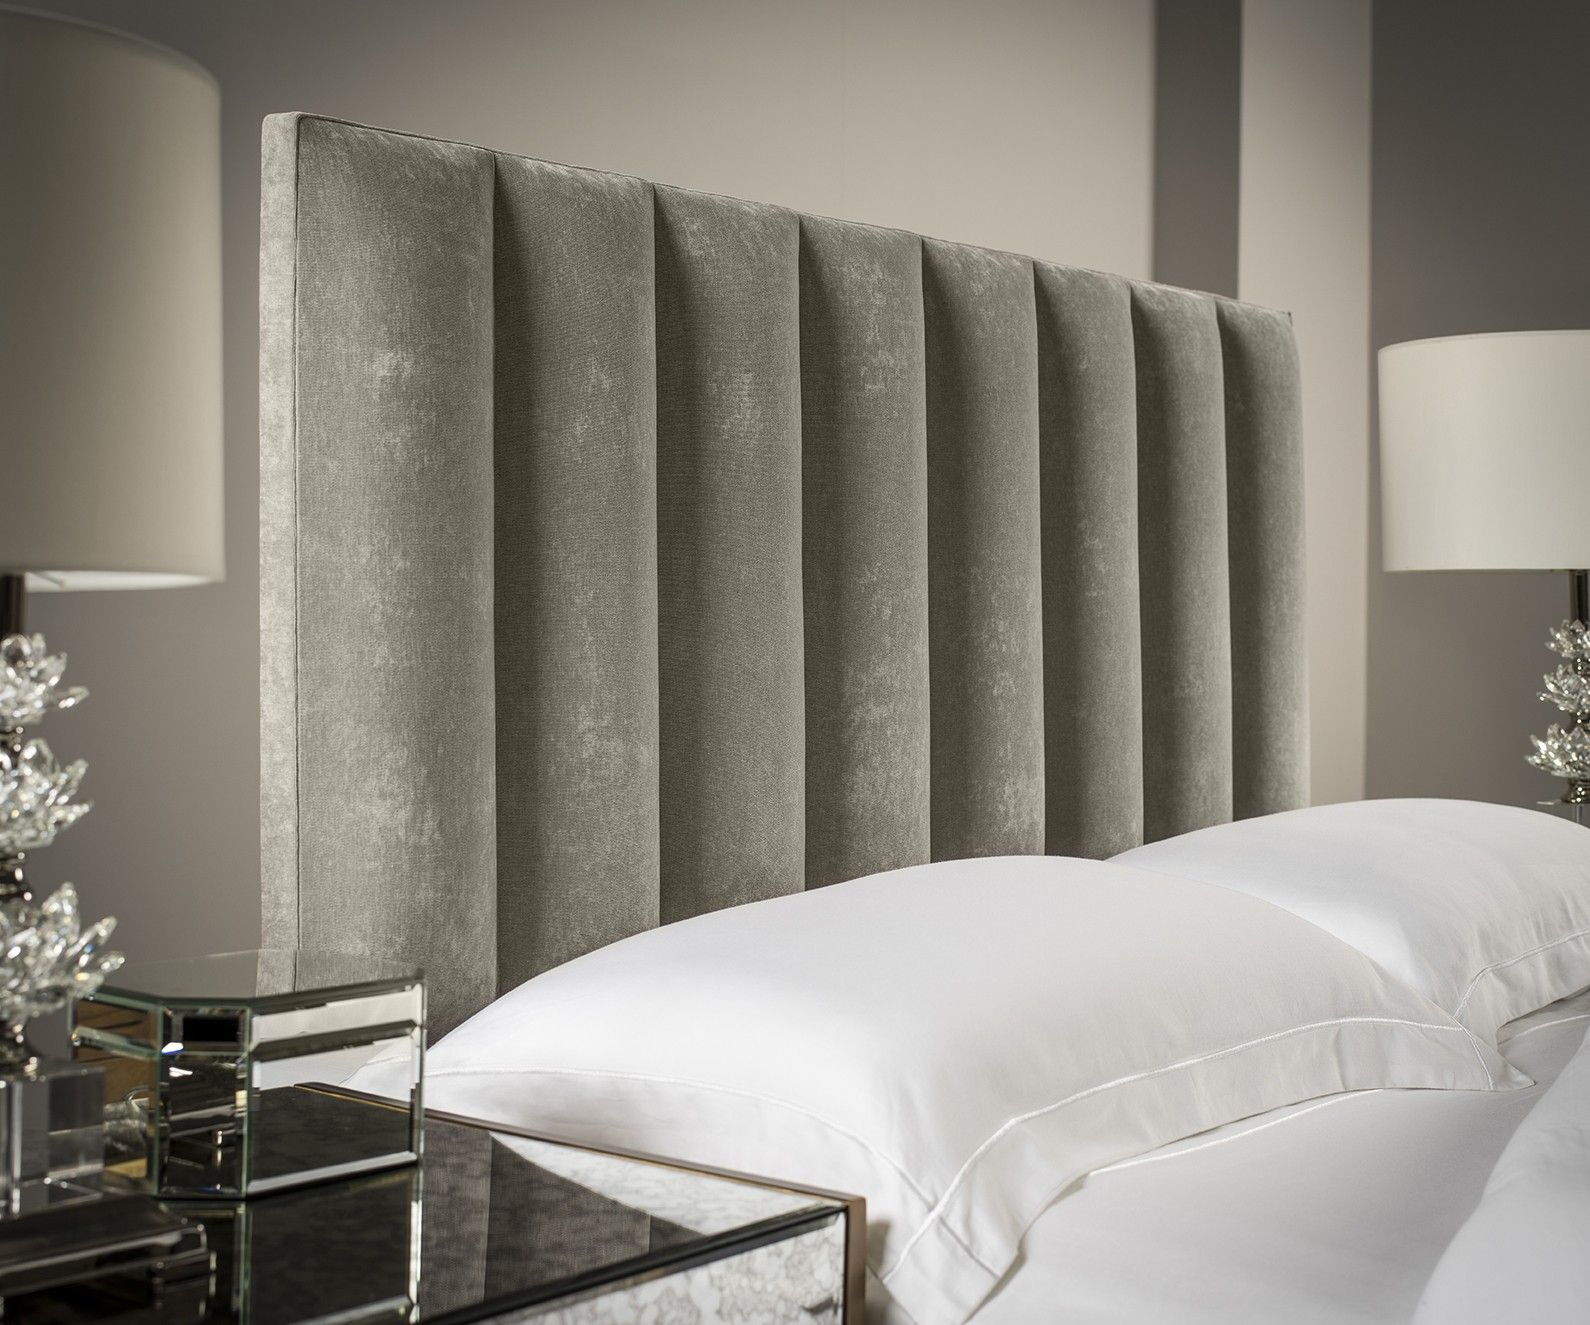 Tubes Vertical Upholstered Headboard | Dormitorio